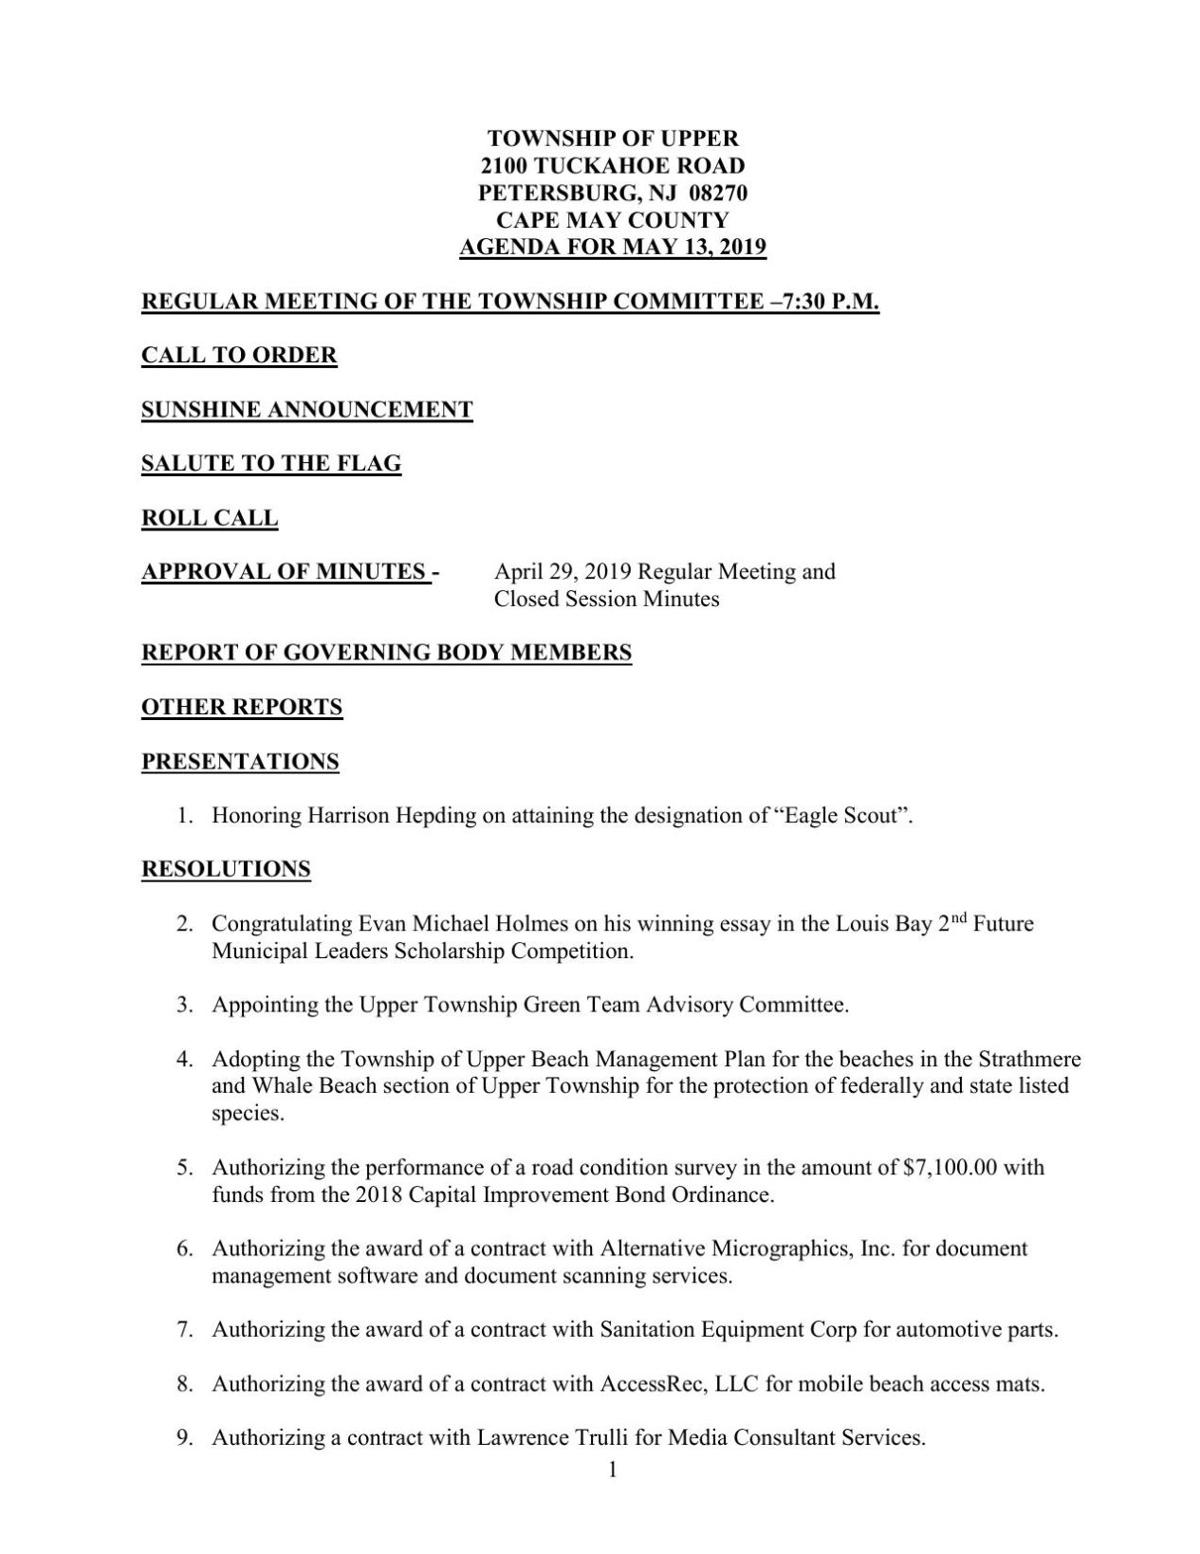 Upper Township Committee Agenda for May 13, 2019